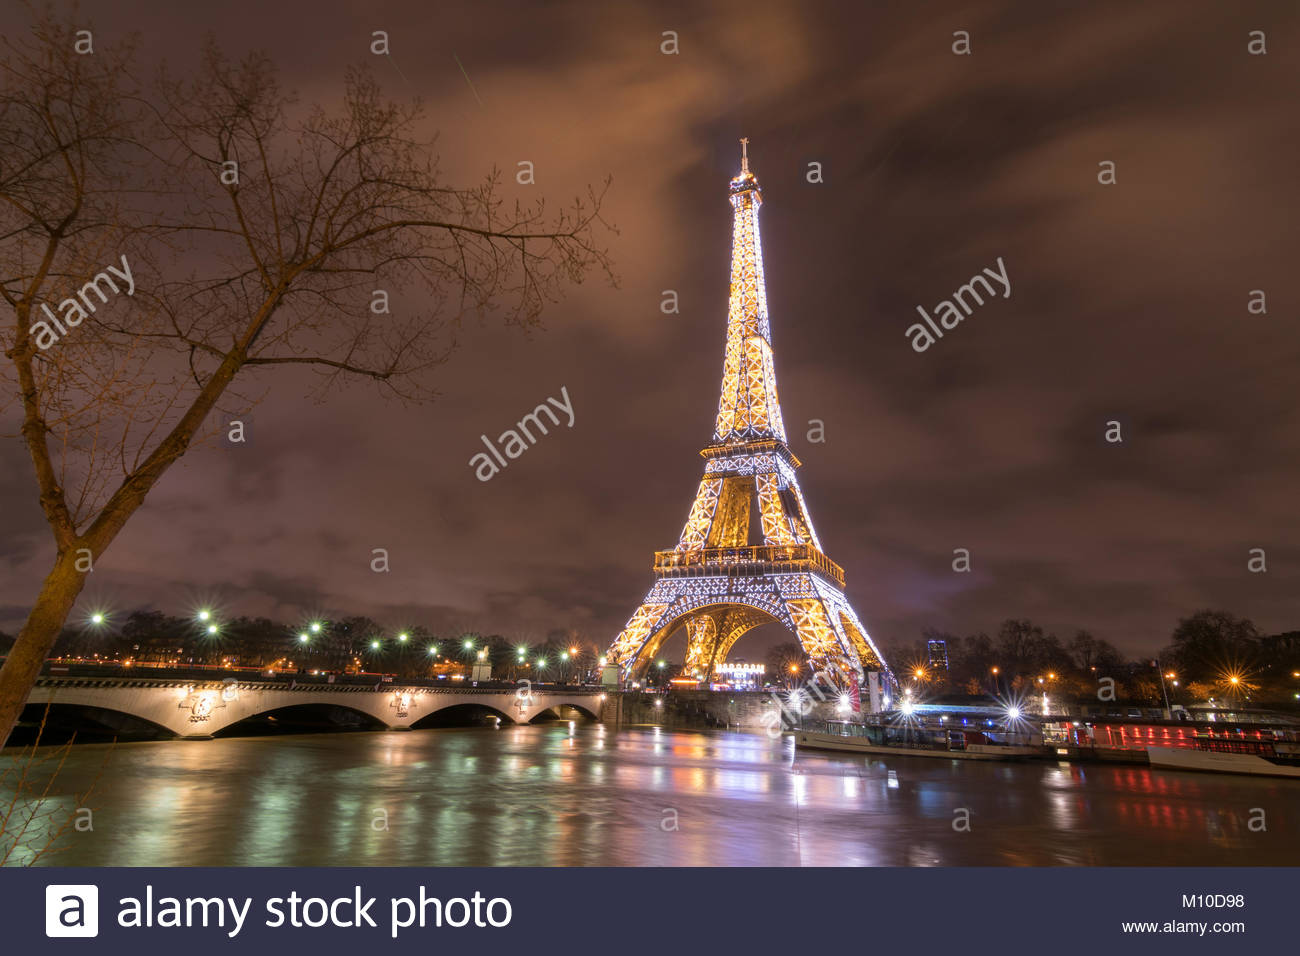 Paris, France. 25th Jan, 2018. Flood water rising in Paris, River Seine in flood January 25 2018 Credit: RichFearon/Alamy - Stock Image